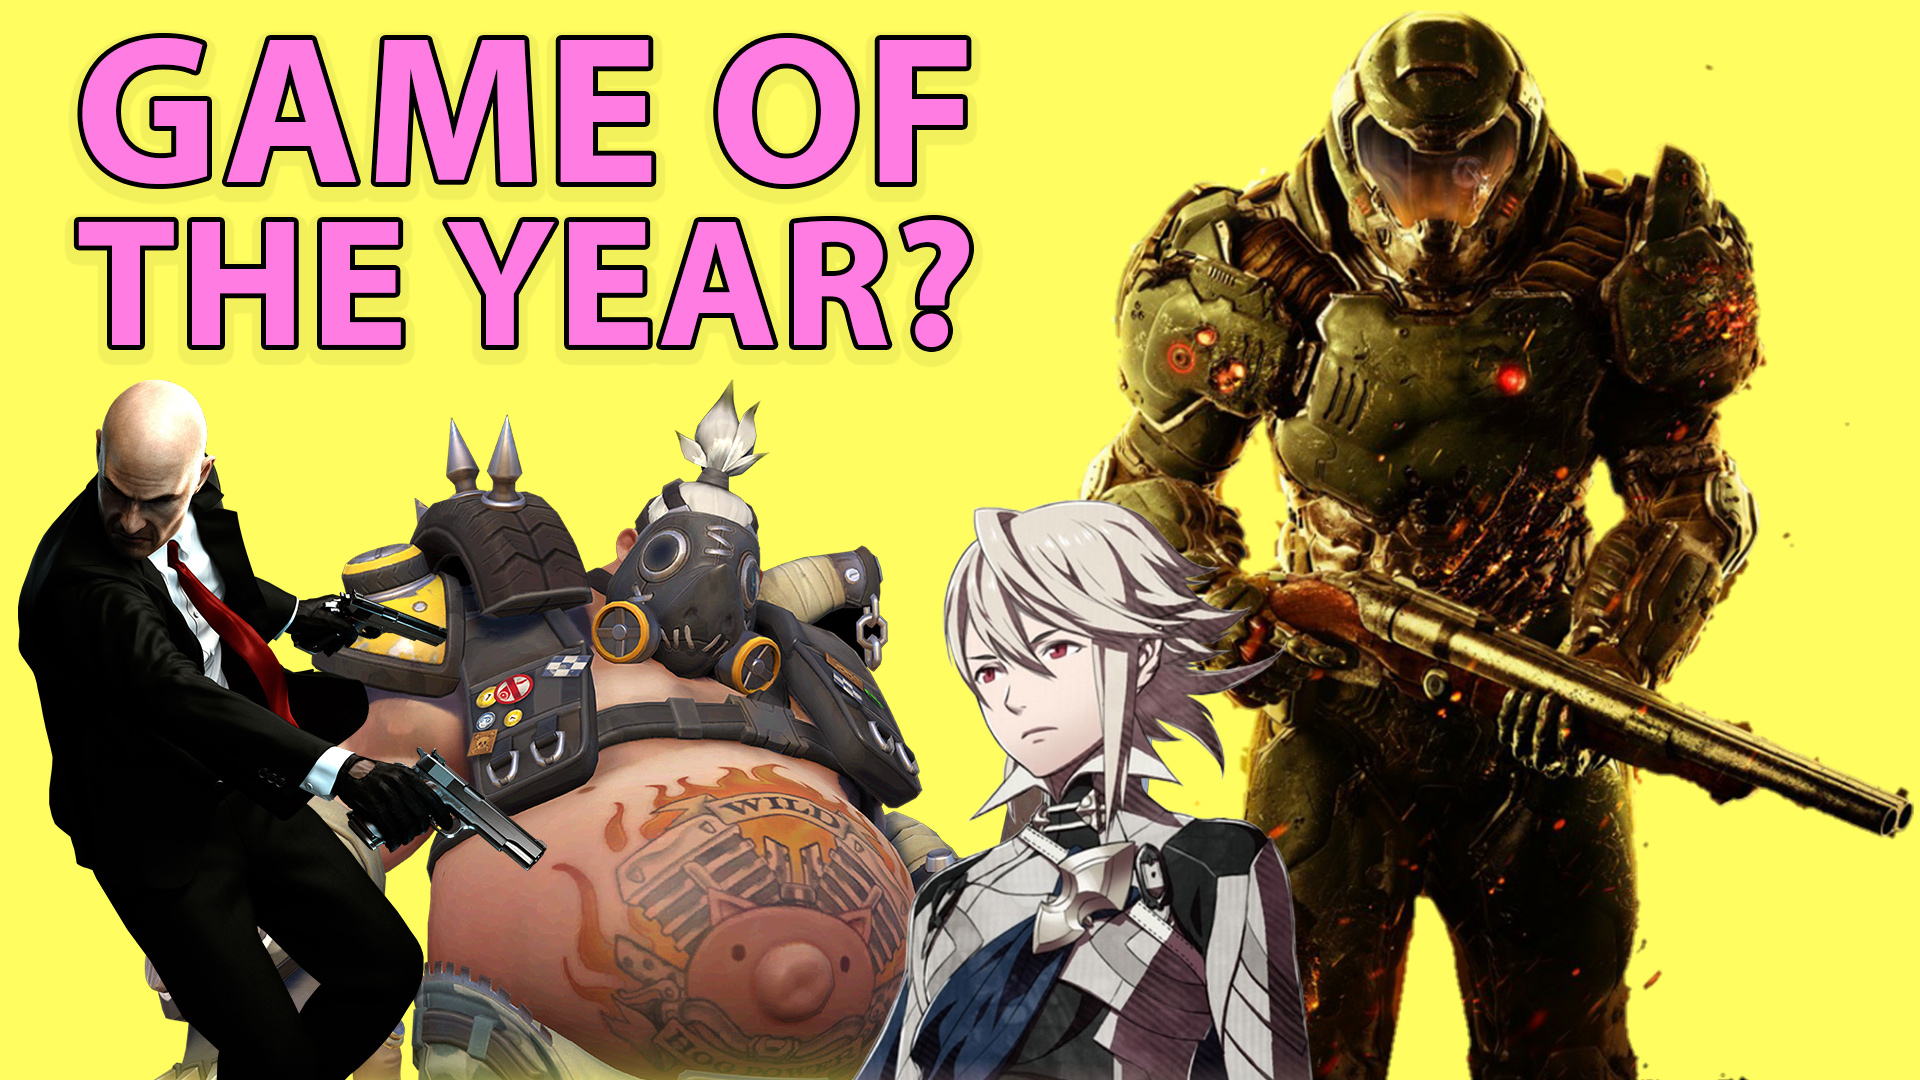 T Time, game of the year, video games, overwatch, fire emblem fates, dark souls 3, hitman, doom, the witness, salt and sanctuary, thumper, hyper light drifter, final fantasy 15